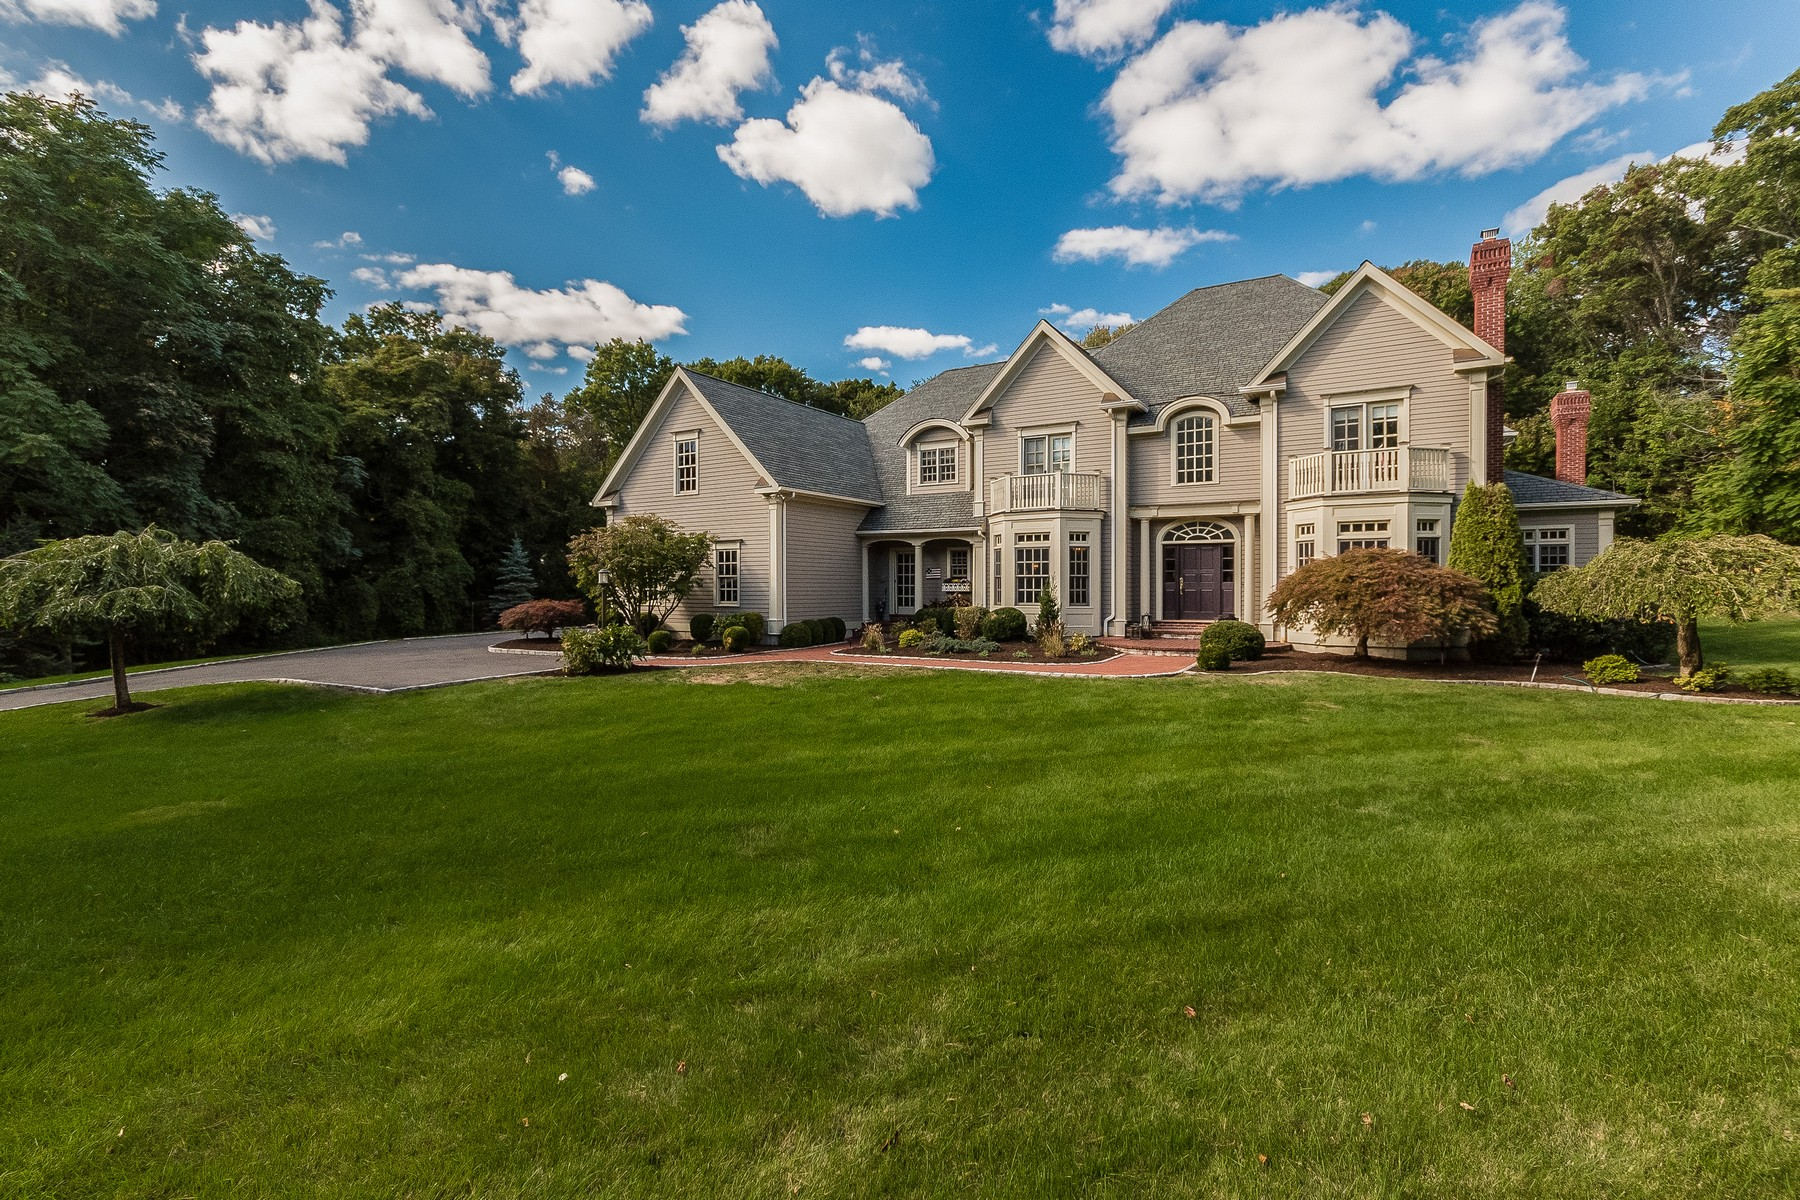 Single Family Home for Sale at WINTON PARK 250 Winton Road Fairfield, Connecticut 06824 United States